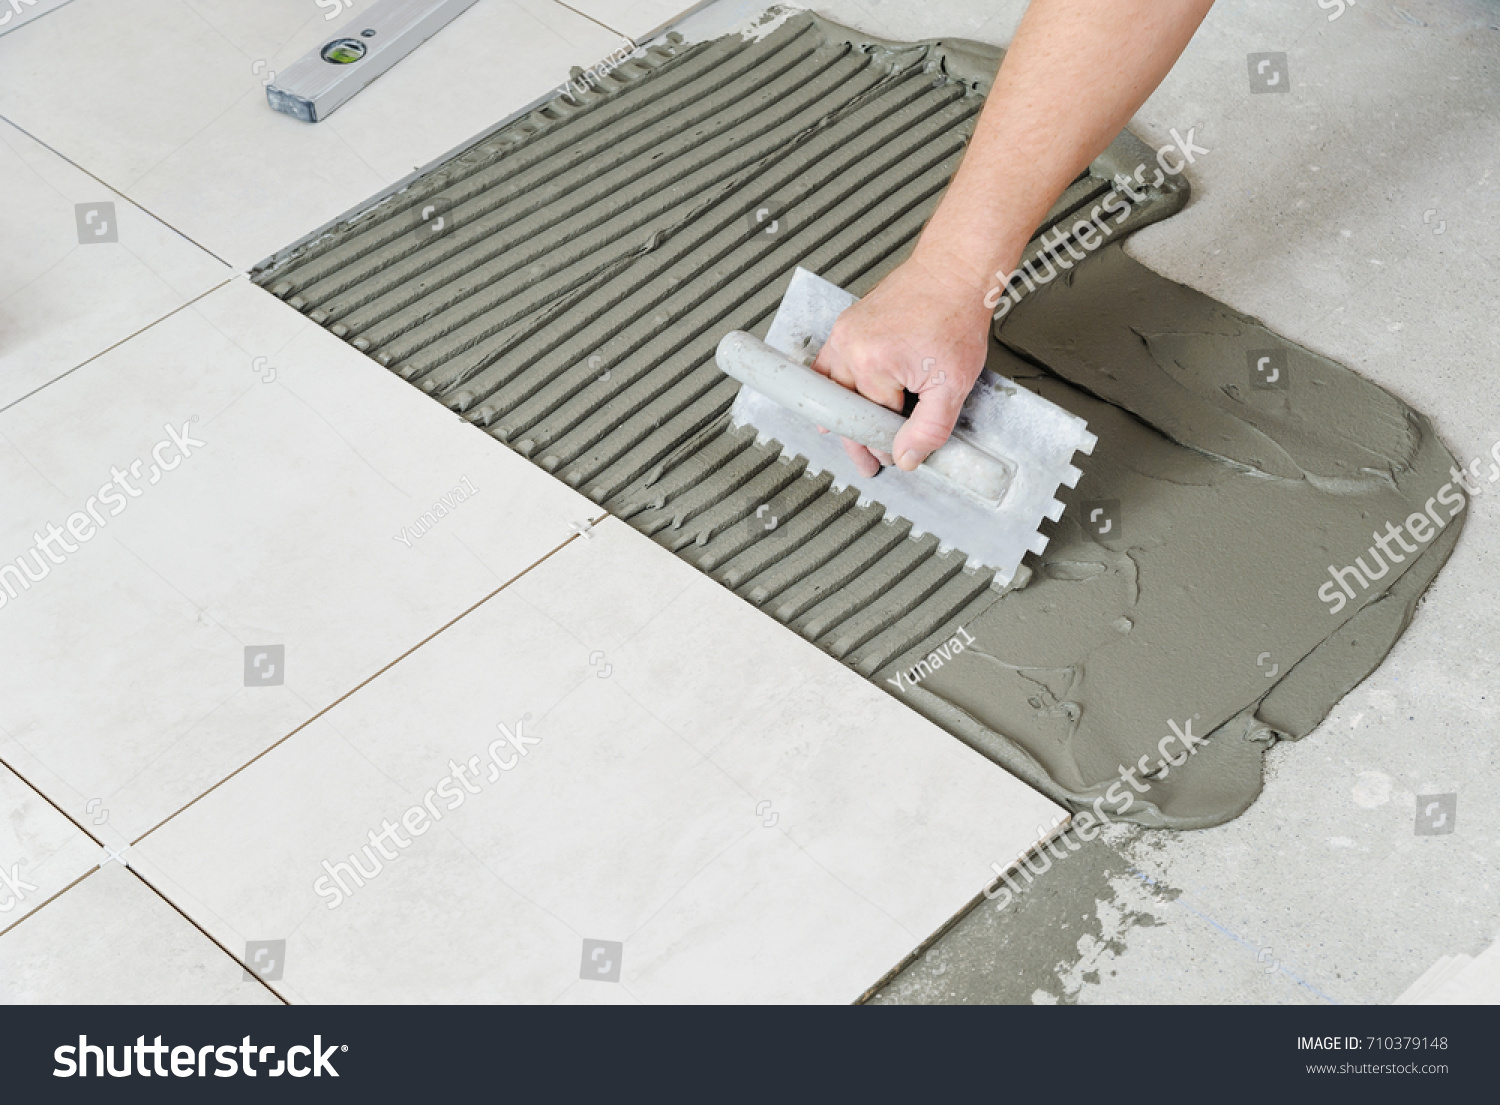 Workers hand putting tiles adhesive wall stock photo 710379148 the workers hand is putting tiles adhesive to the wall with the notched trowel dailygadgetfo Gallery